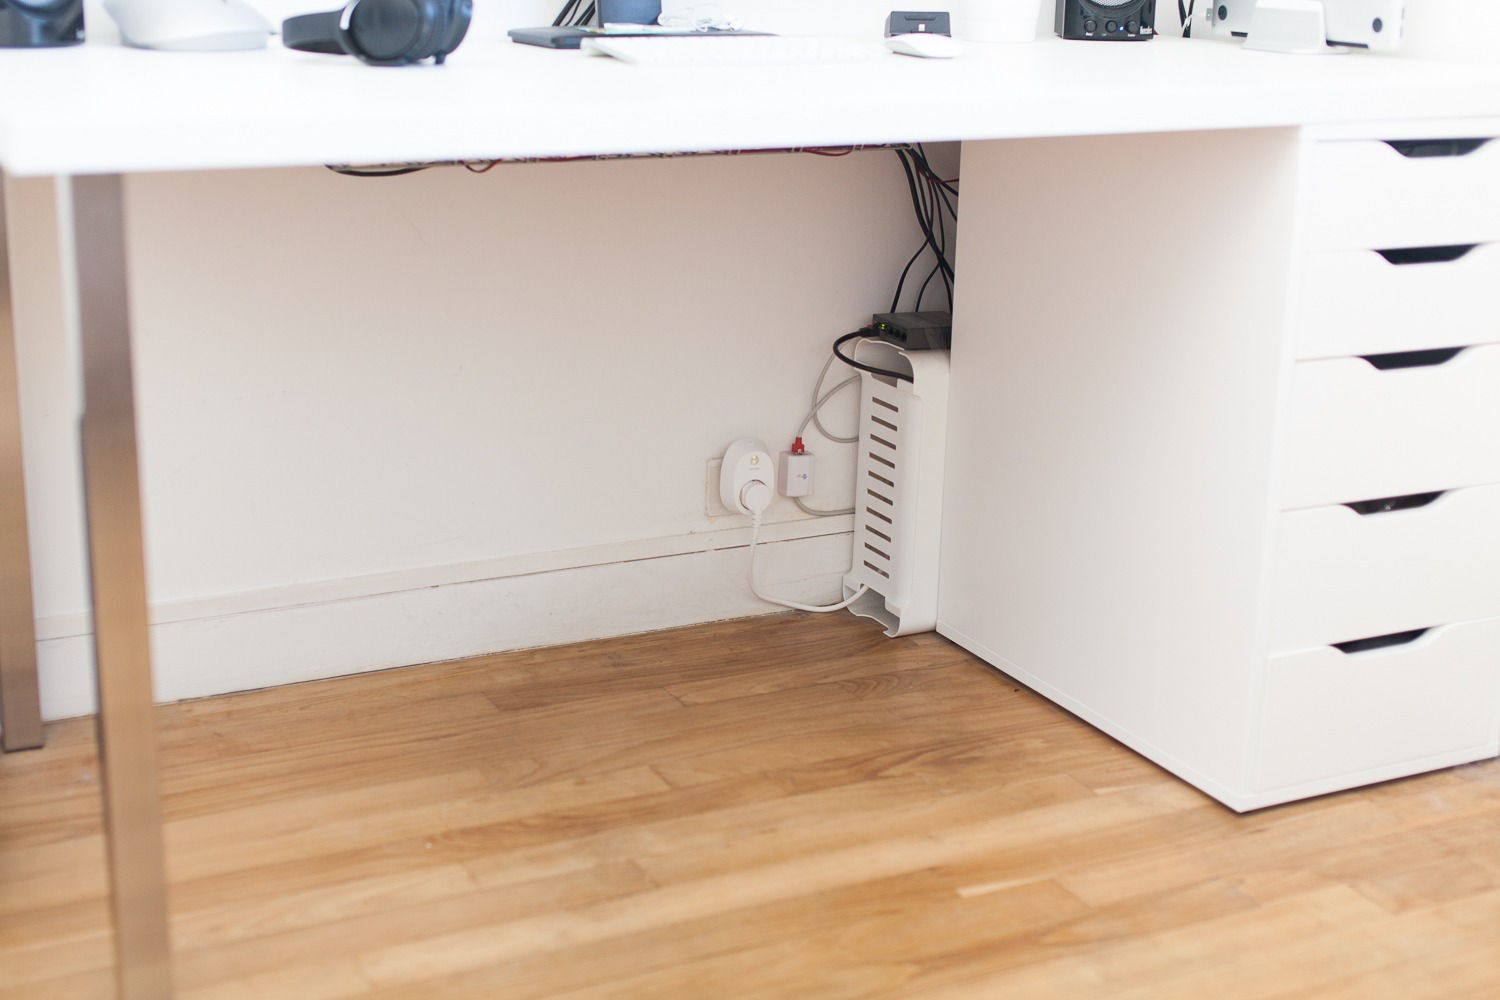 Comment faire un bon cable management pour son bureau ? antoine